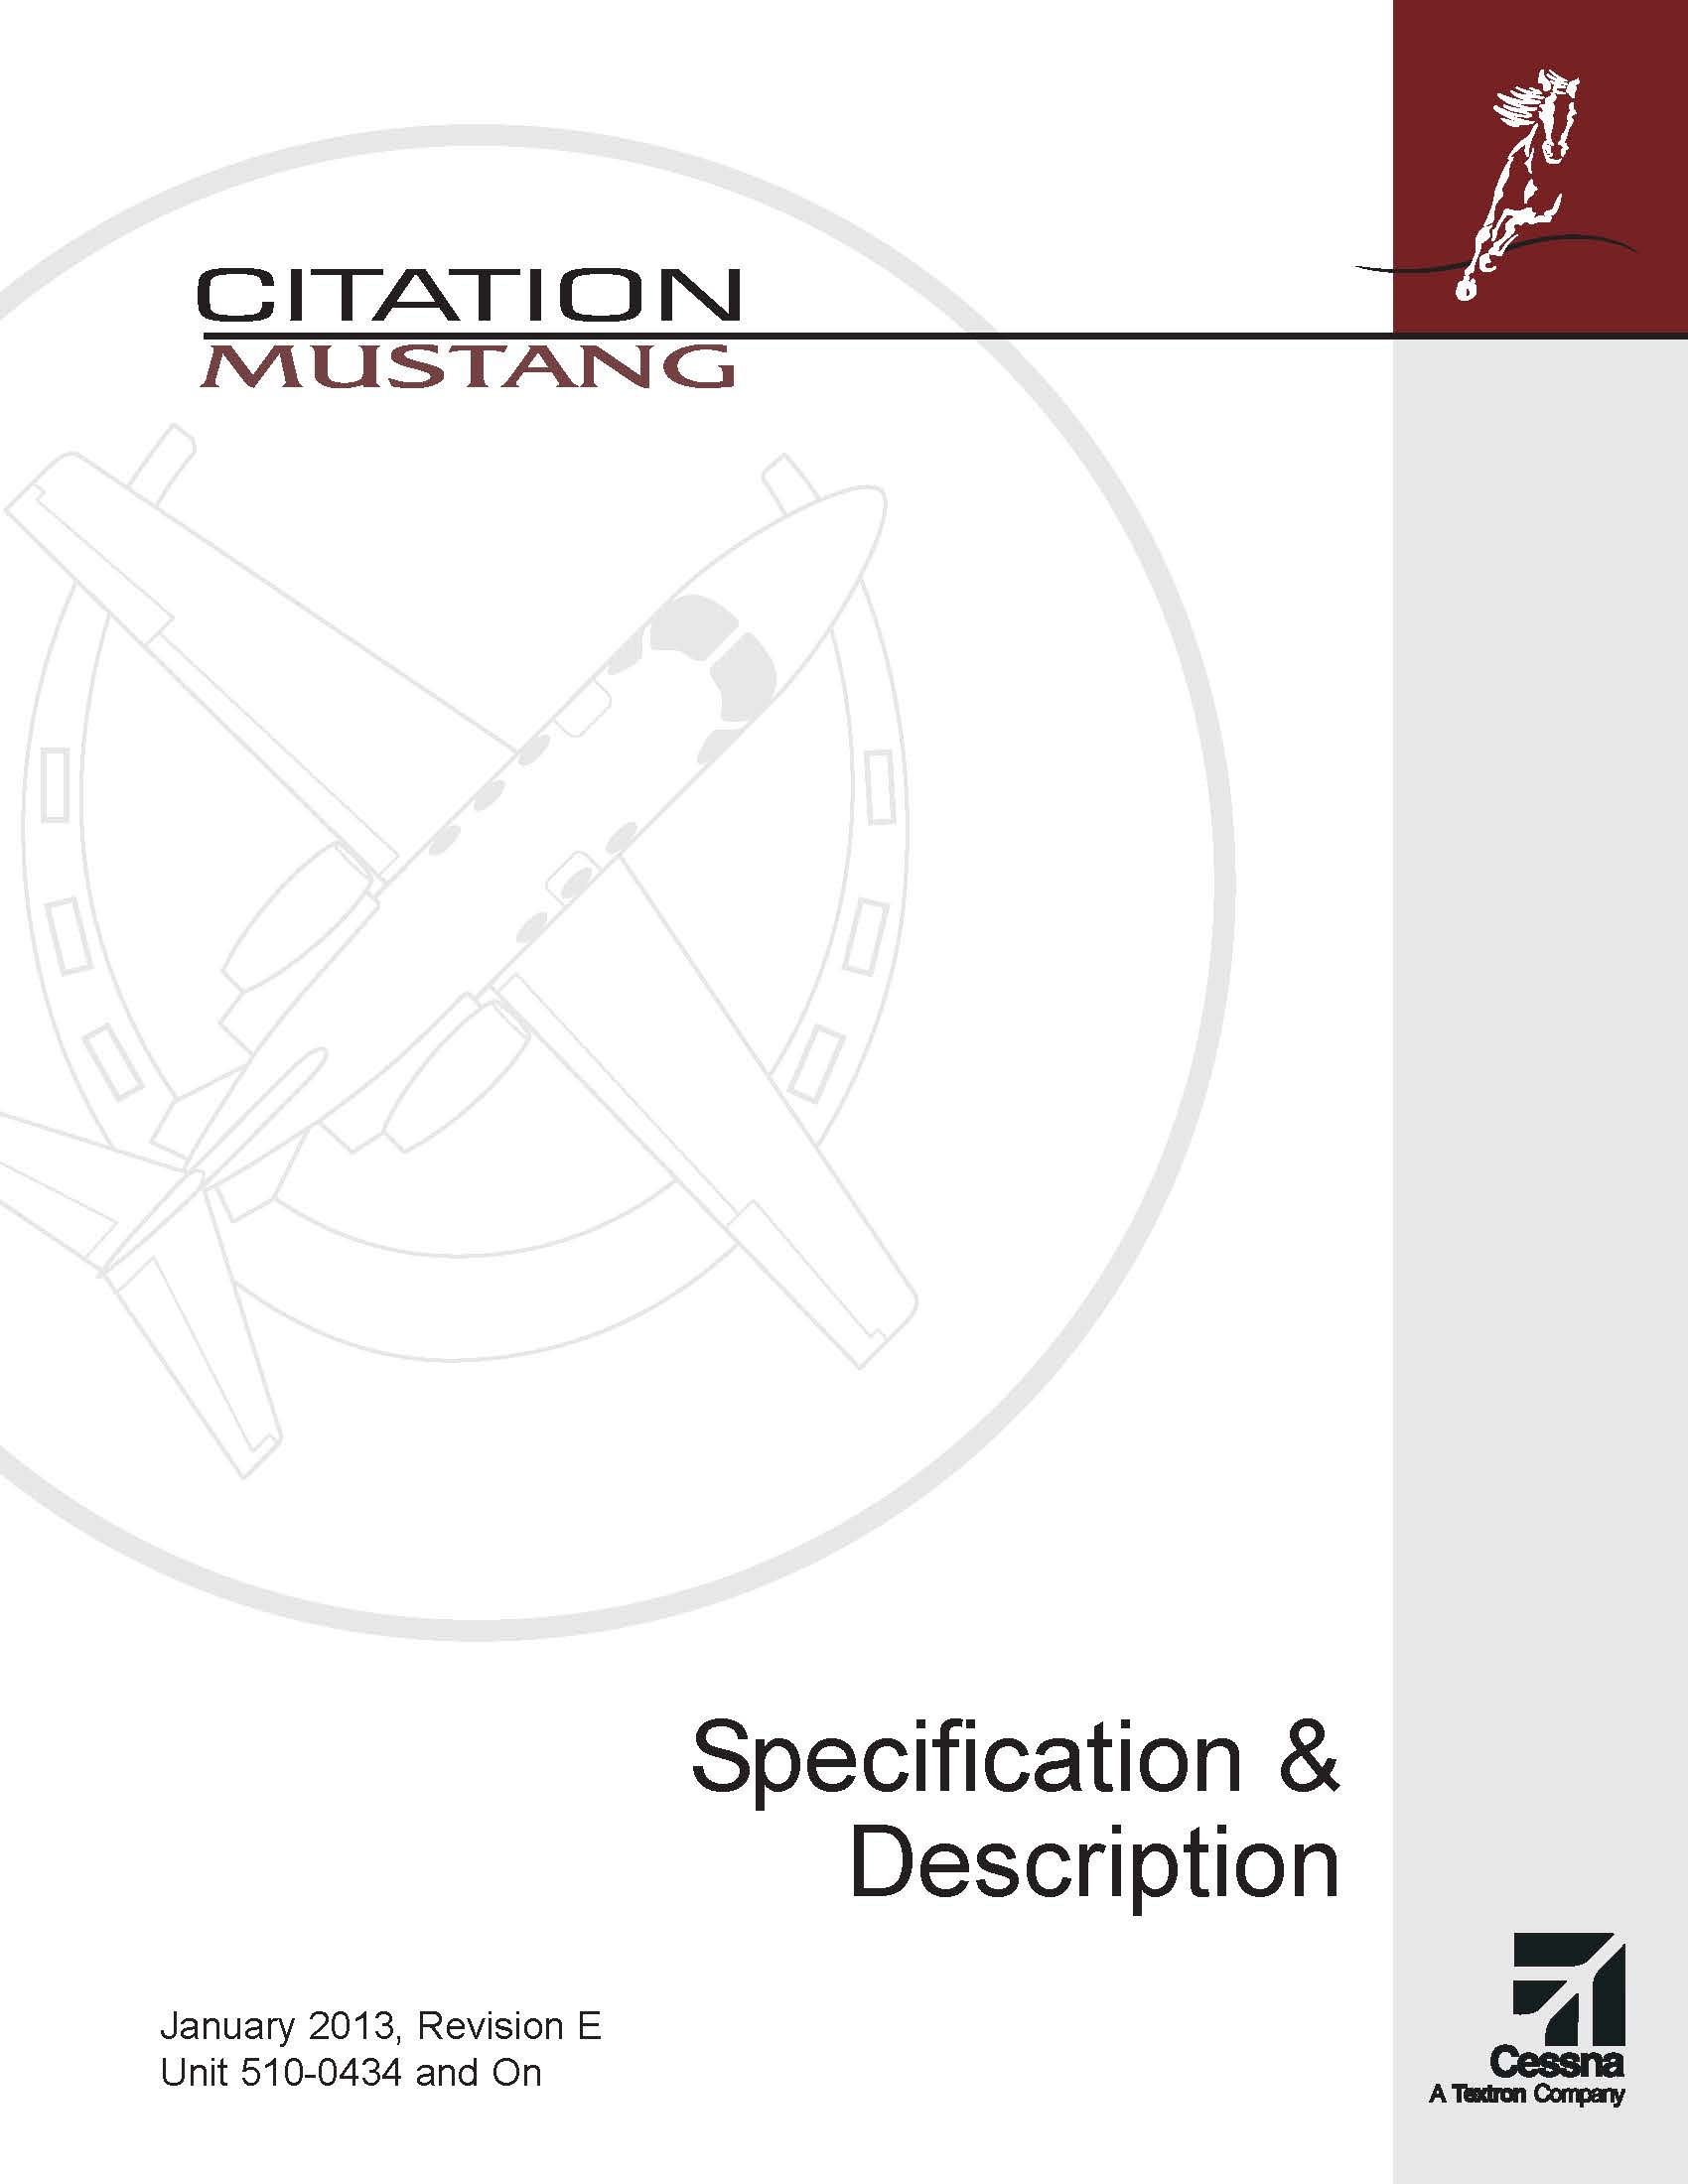 Citation Mustang spec & description